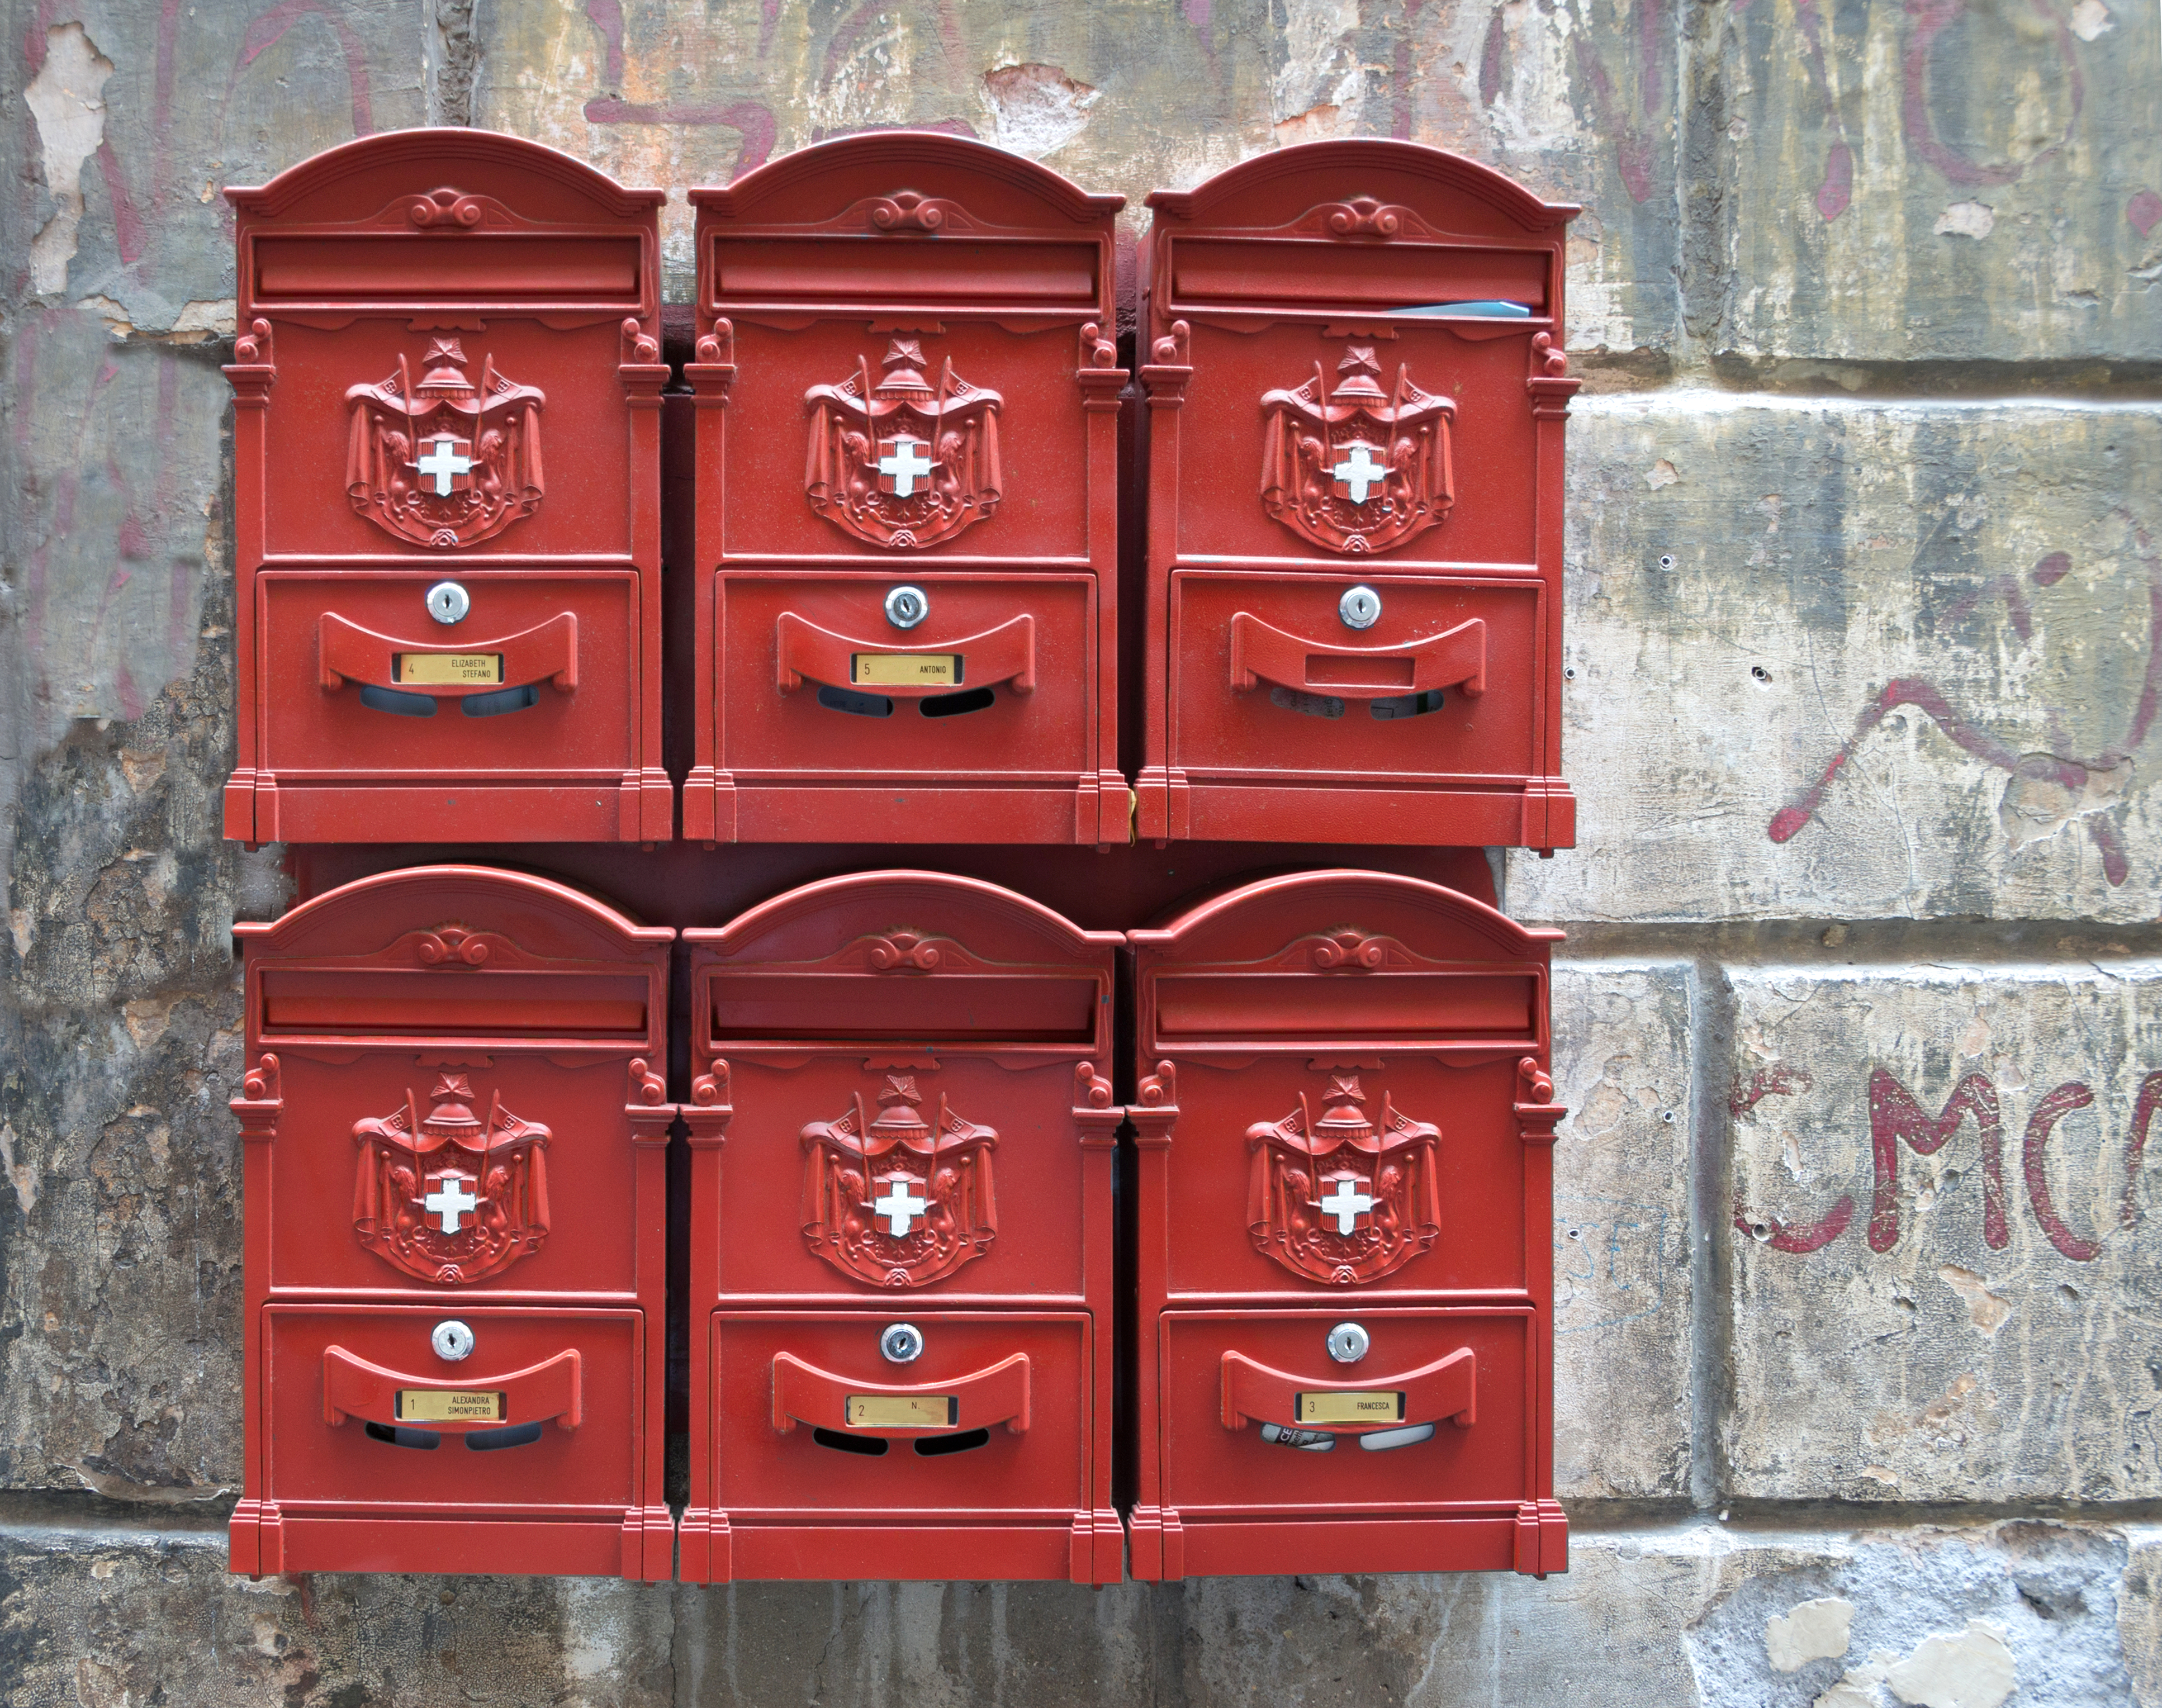 Mail Boxes, Rome, Italy